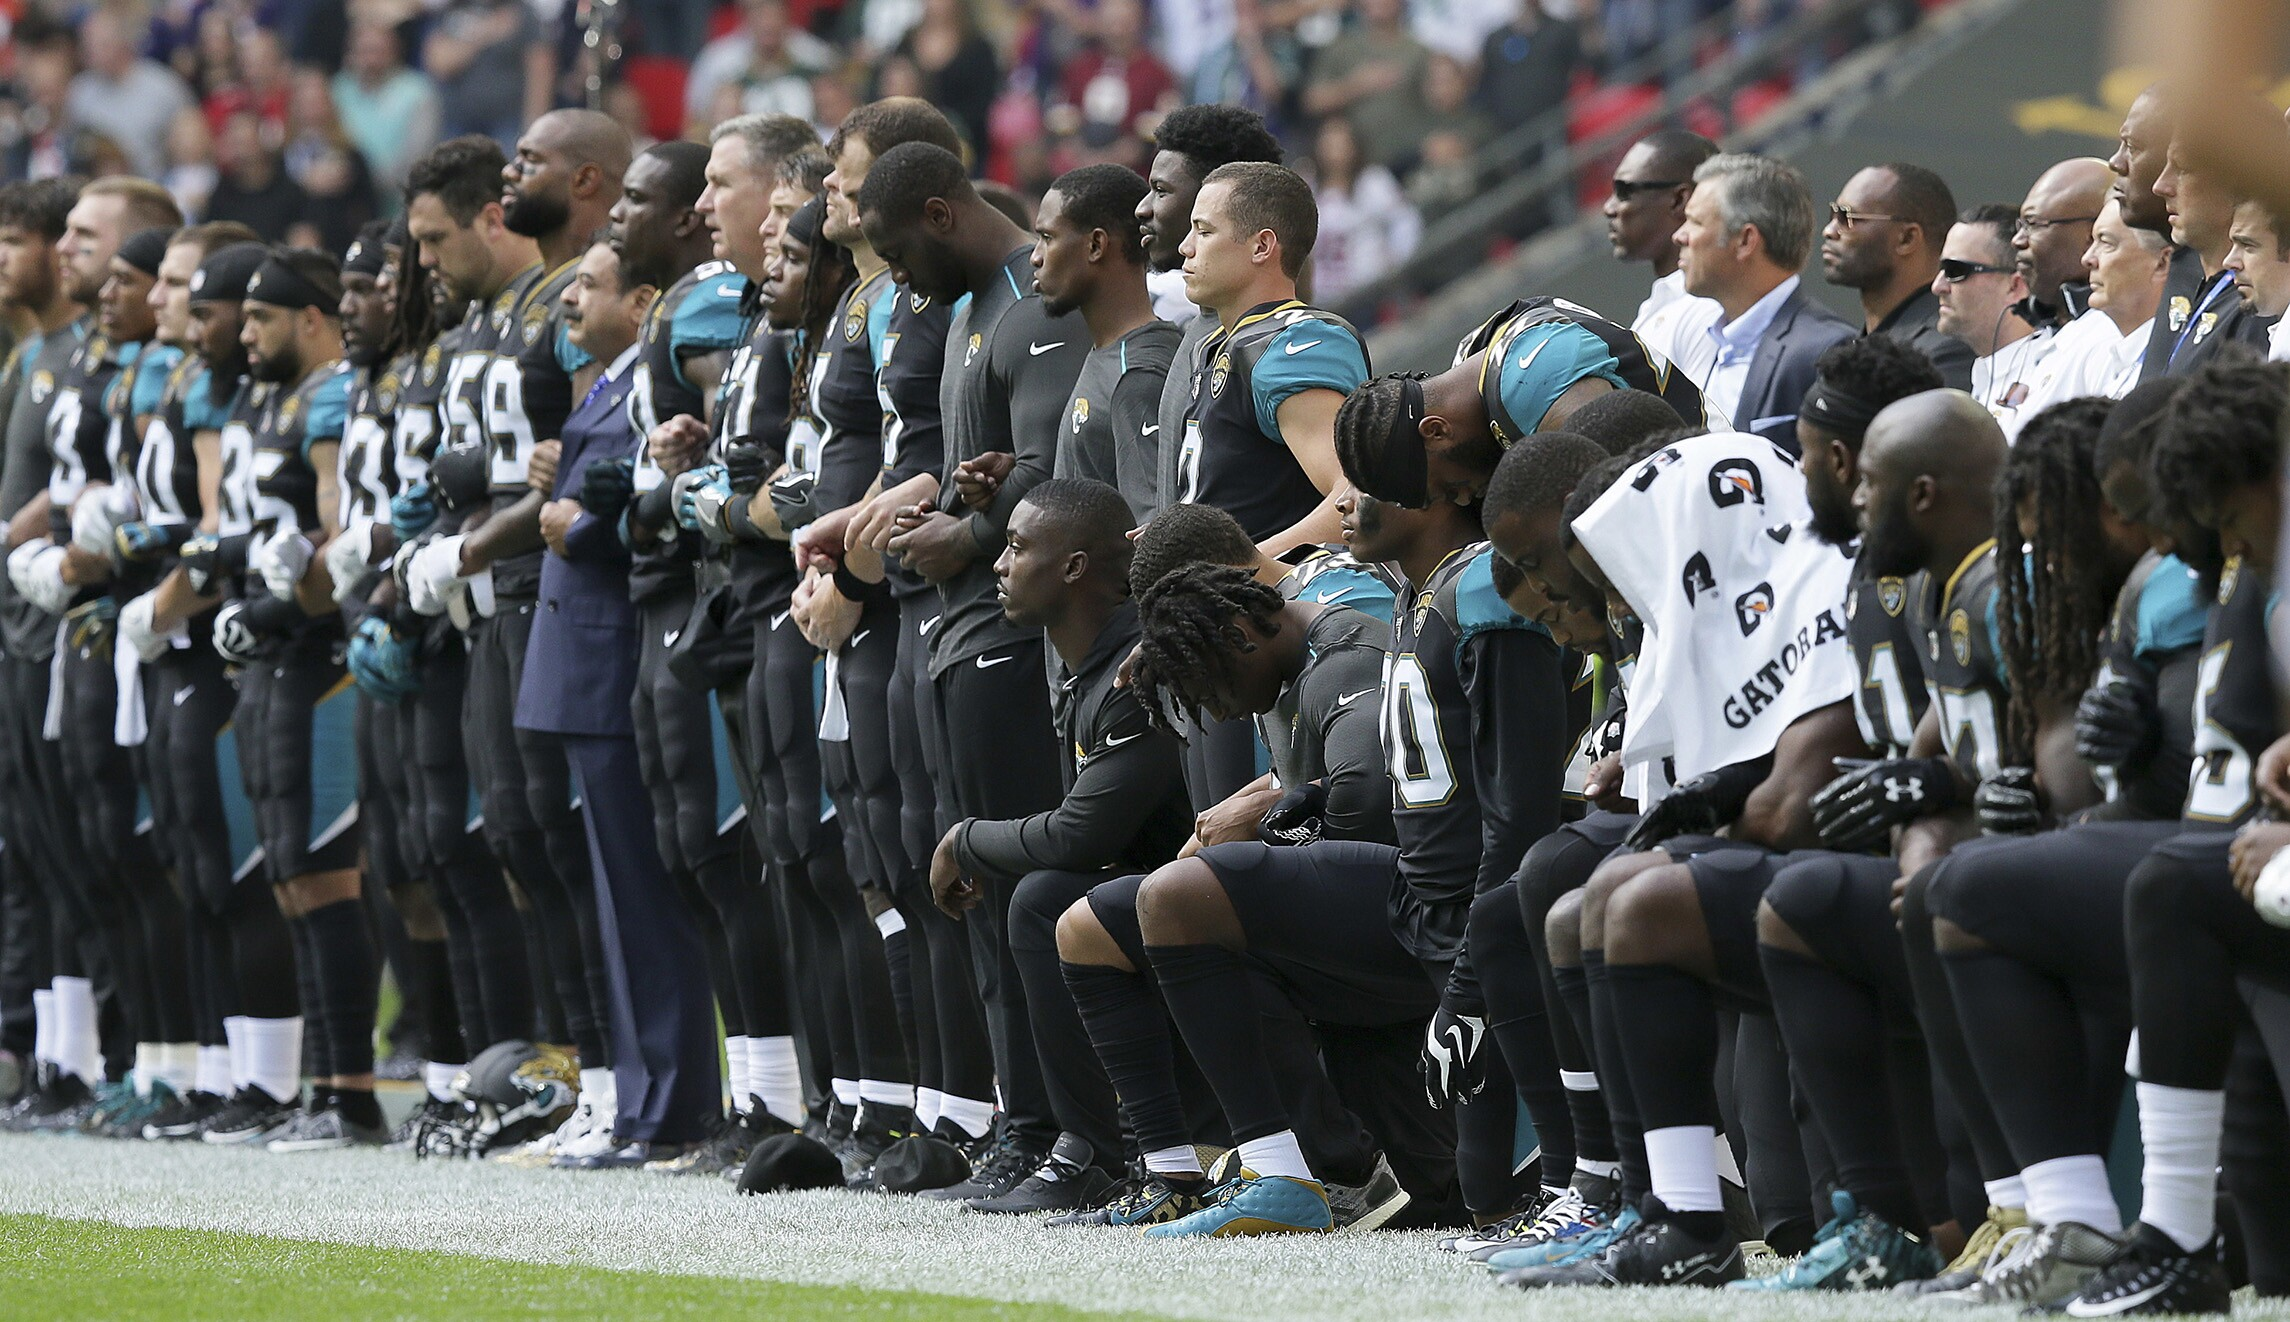 Veterans groups: NFL players who kneel during national anthem are